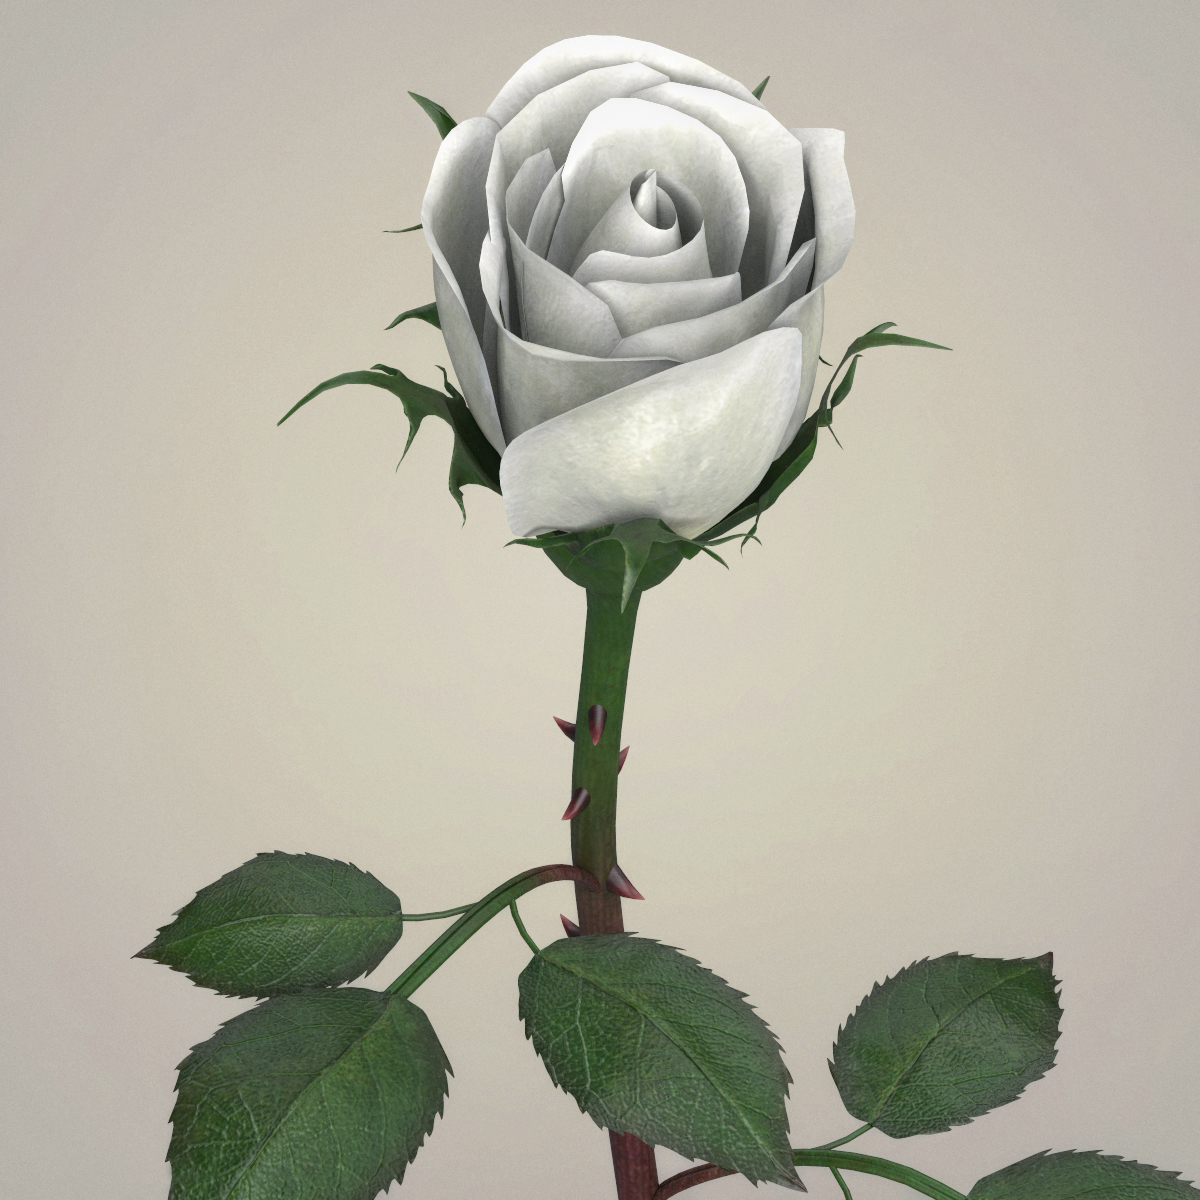 rose flower collection 3d model max fbx c4d ma mb obj 252770